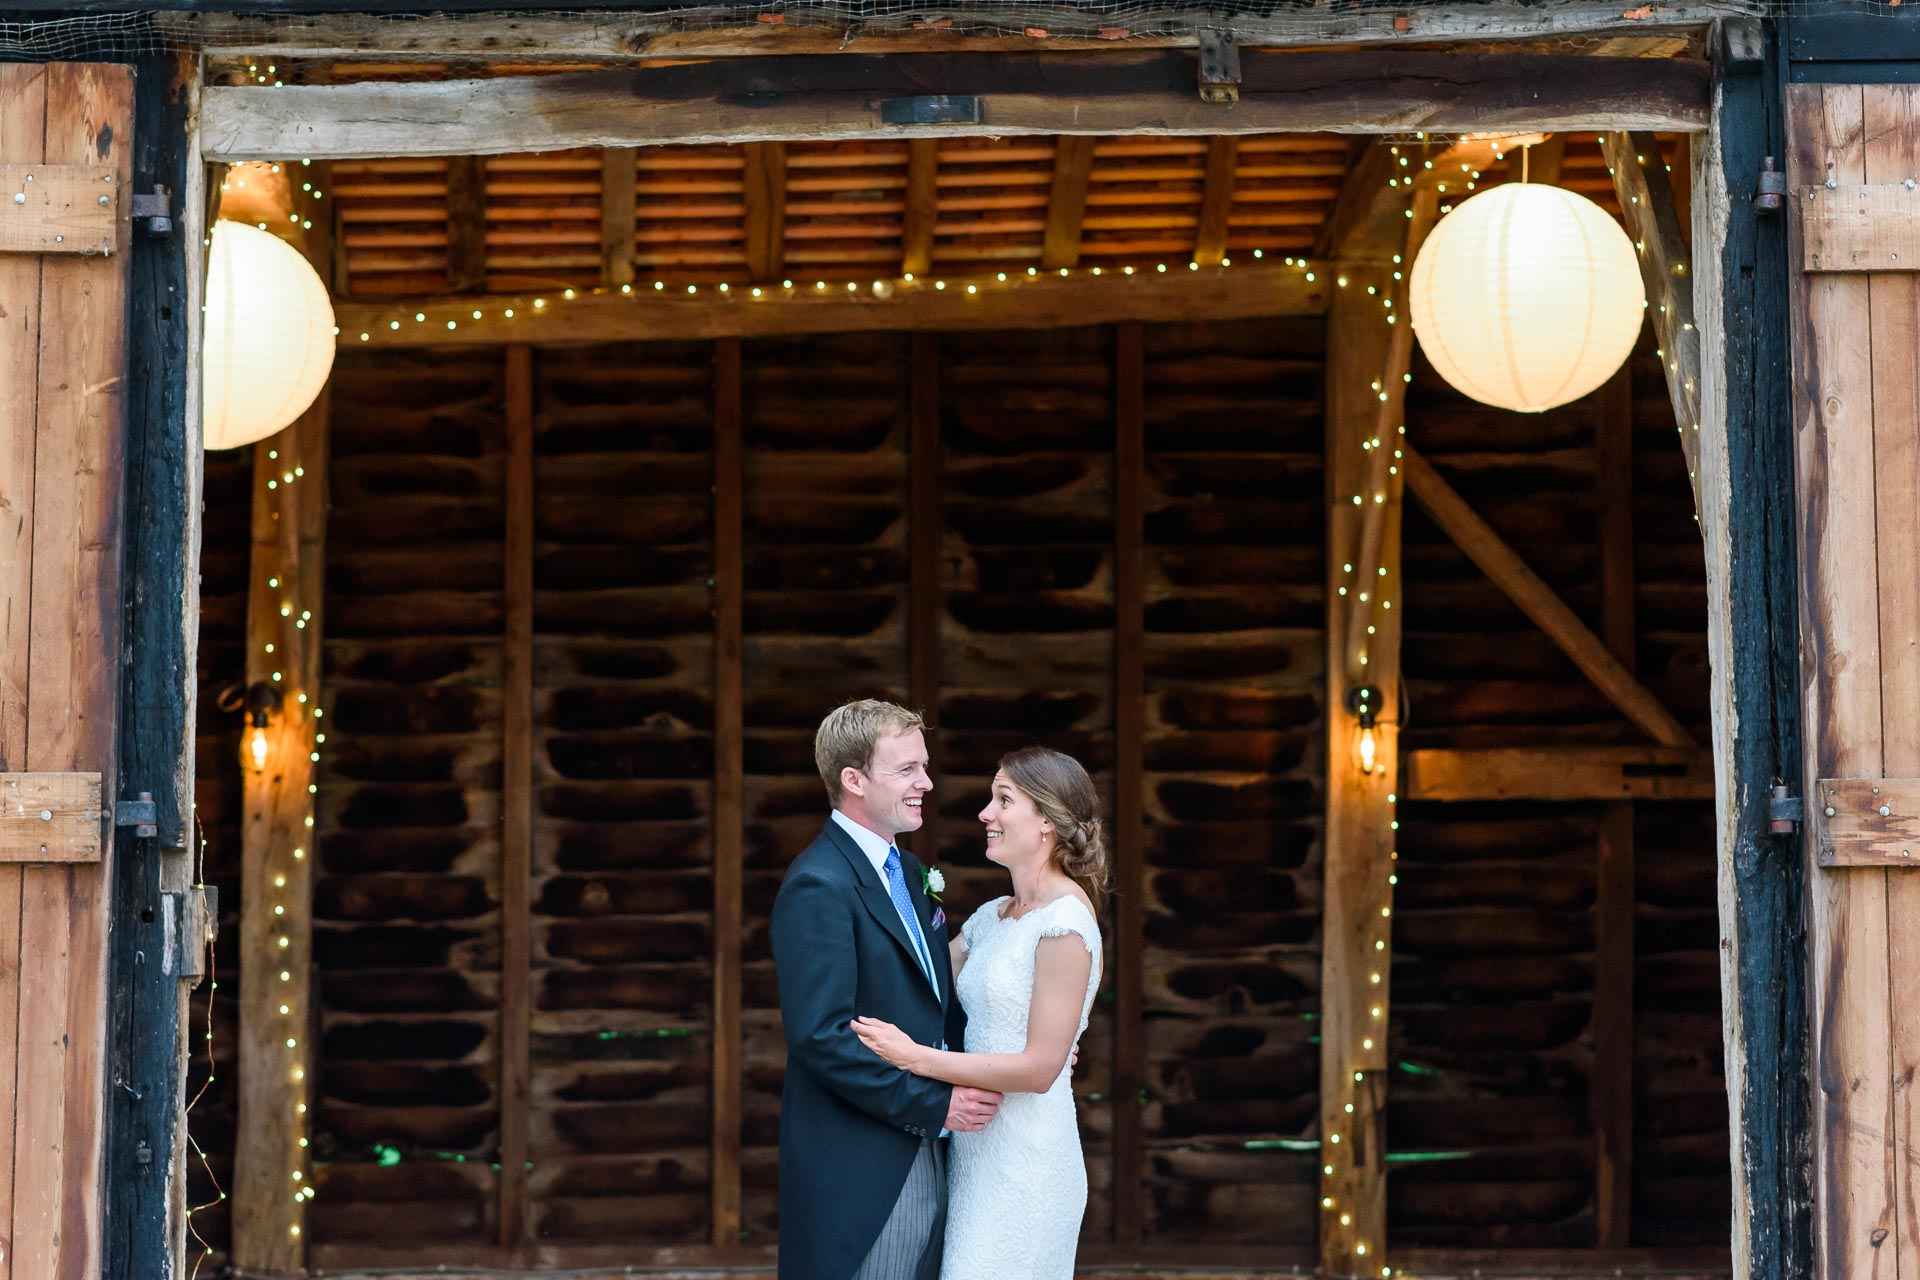 An image of a happy couple together outside their barn reception - wedding day photography by Sam of Hansford Carter, a Kent-based wedding photographer